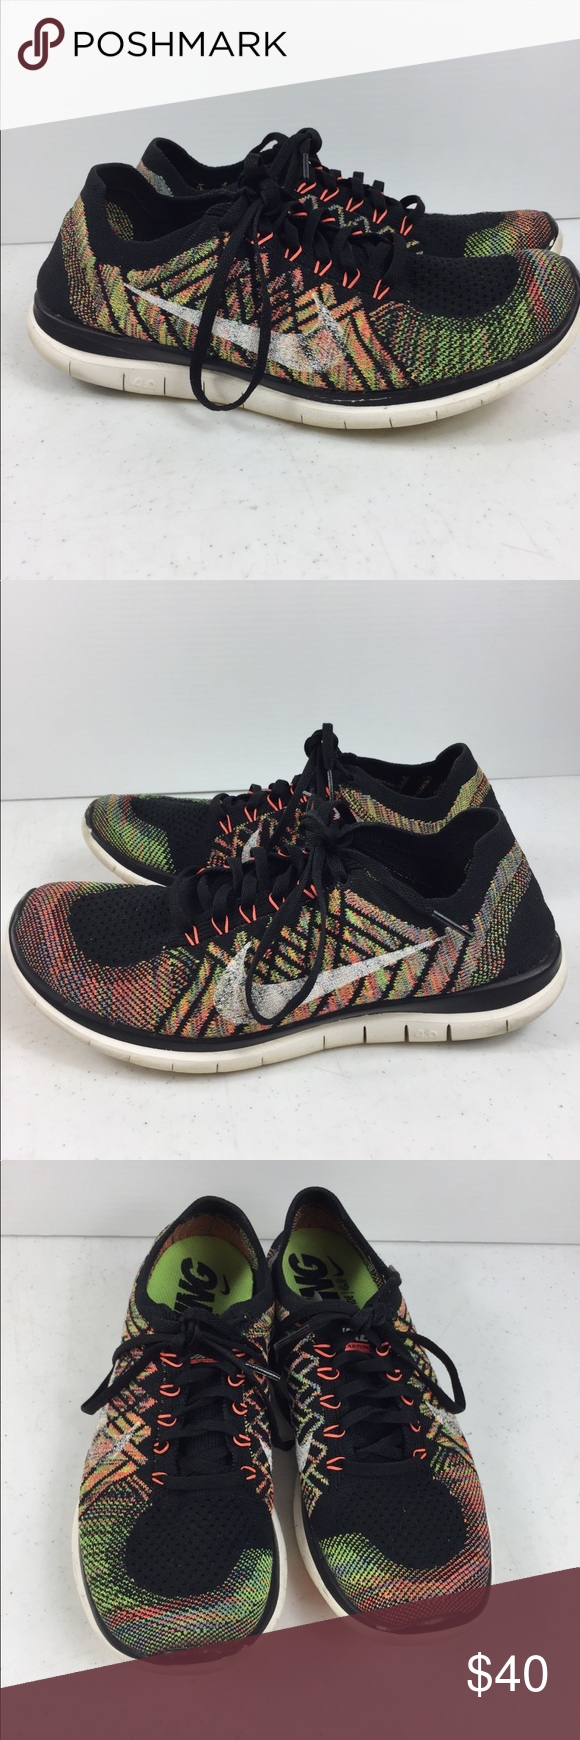 96fab37418741 NIKE Free 4.0 FLYKNIT Trainer Shoe Mens 8.5 NIKE Free 4.0 FLYKNIT  717075-011 Black Crazy Full Spectrum Trainer Shoe Mens 8.5 Nike Shoes  Sneakers